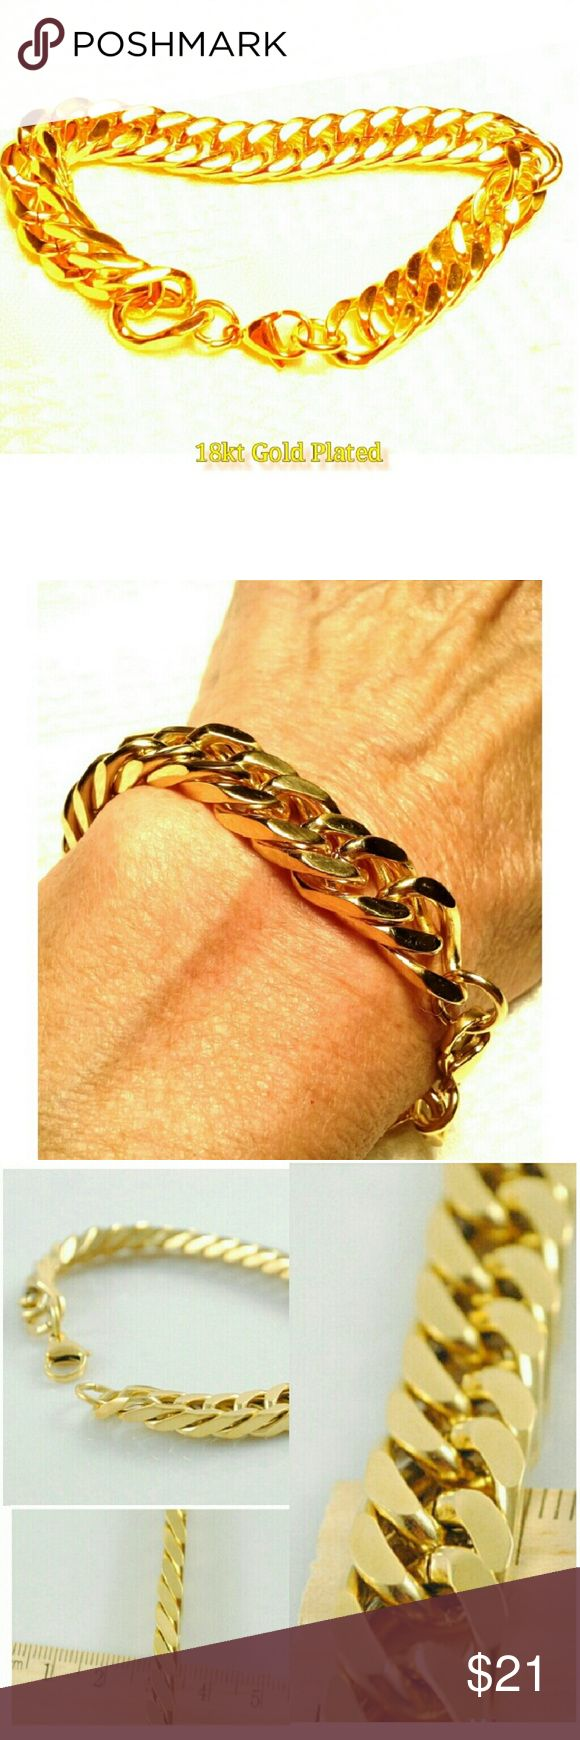 K yellow gold mm anchor link chain anklet inch free and fast